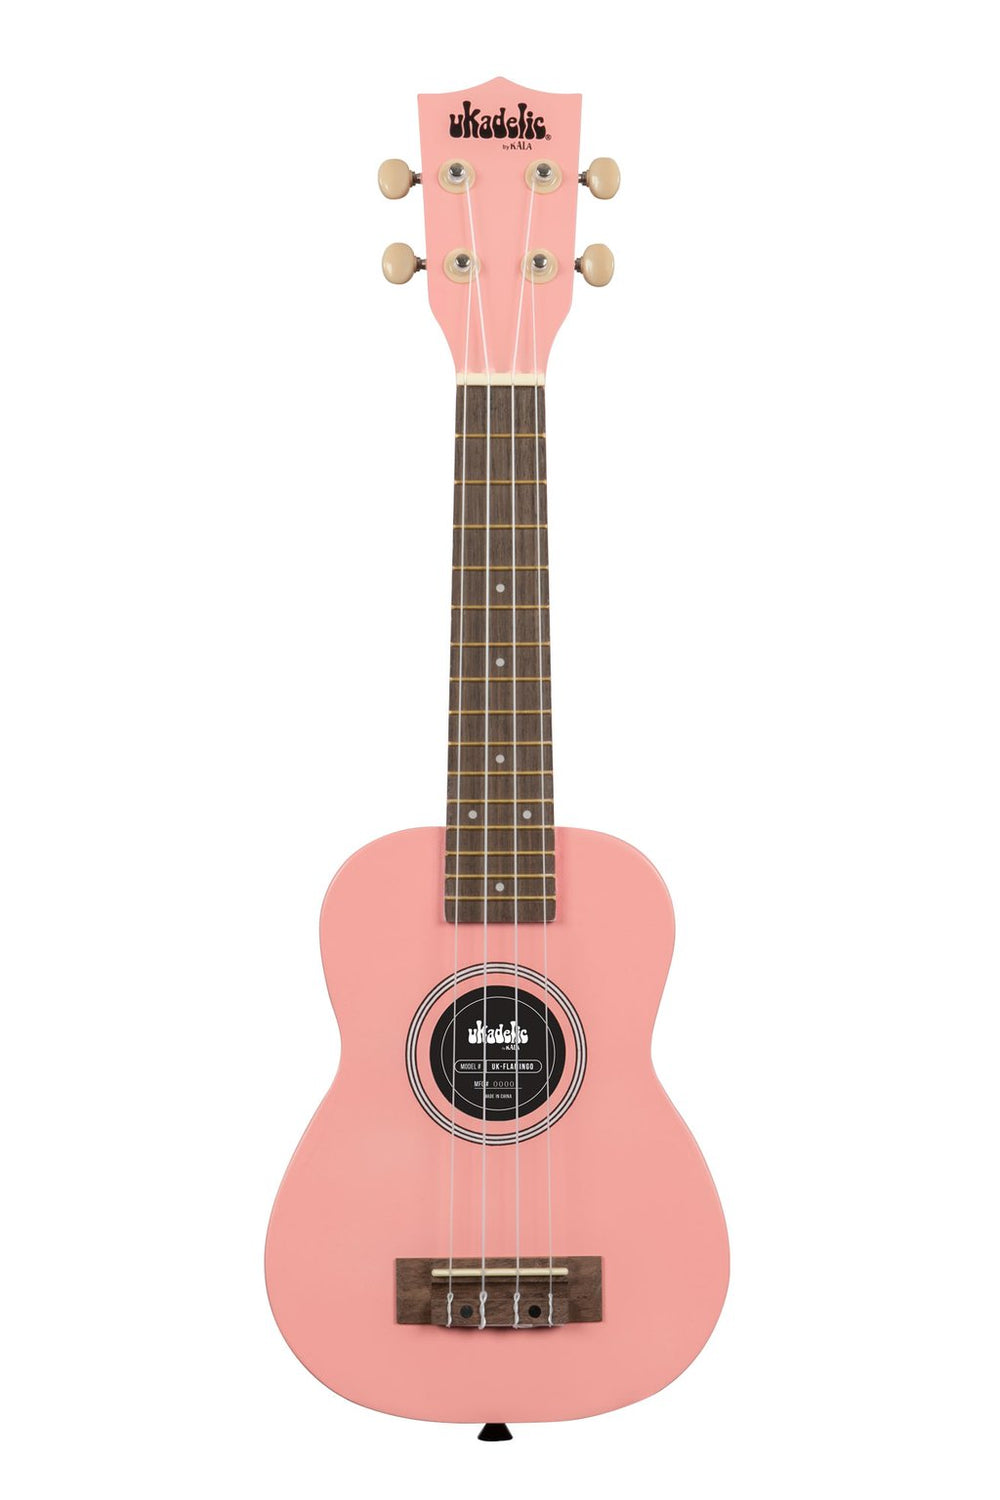 KALA Ukadelic Flamingo Soprano Ukulele Pack with Tote Bag UK-FLAMINGO